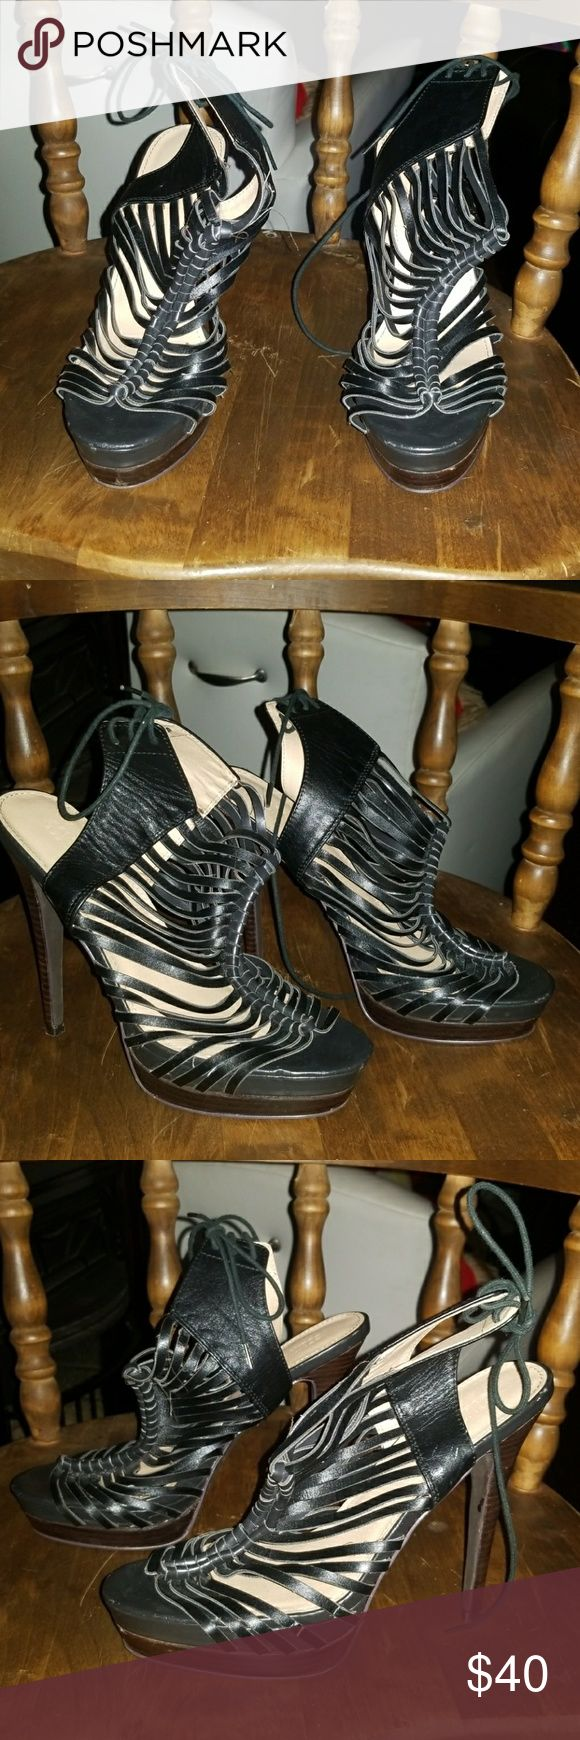 "Colin Stuart blk hi heel shoes Colon Stuart blk 6"" tie up back,peep toe heel out women's shoes. Colin Stuart Shoes Heels"